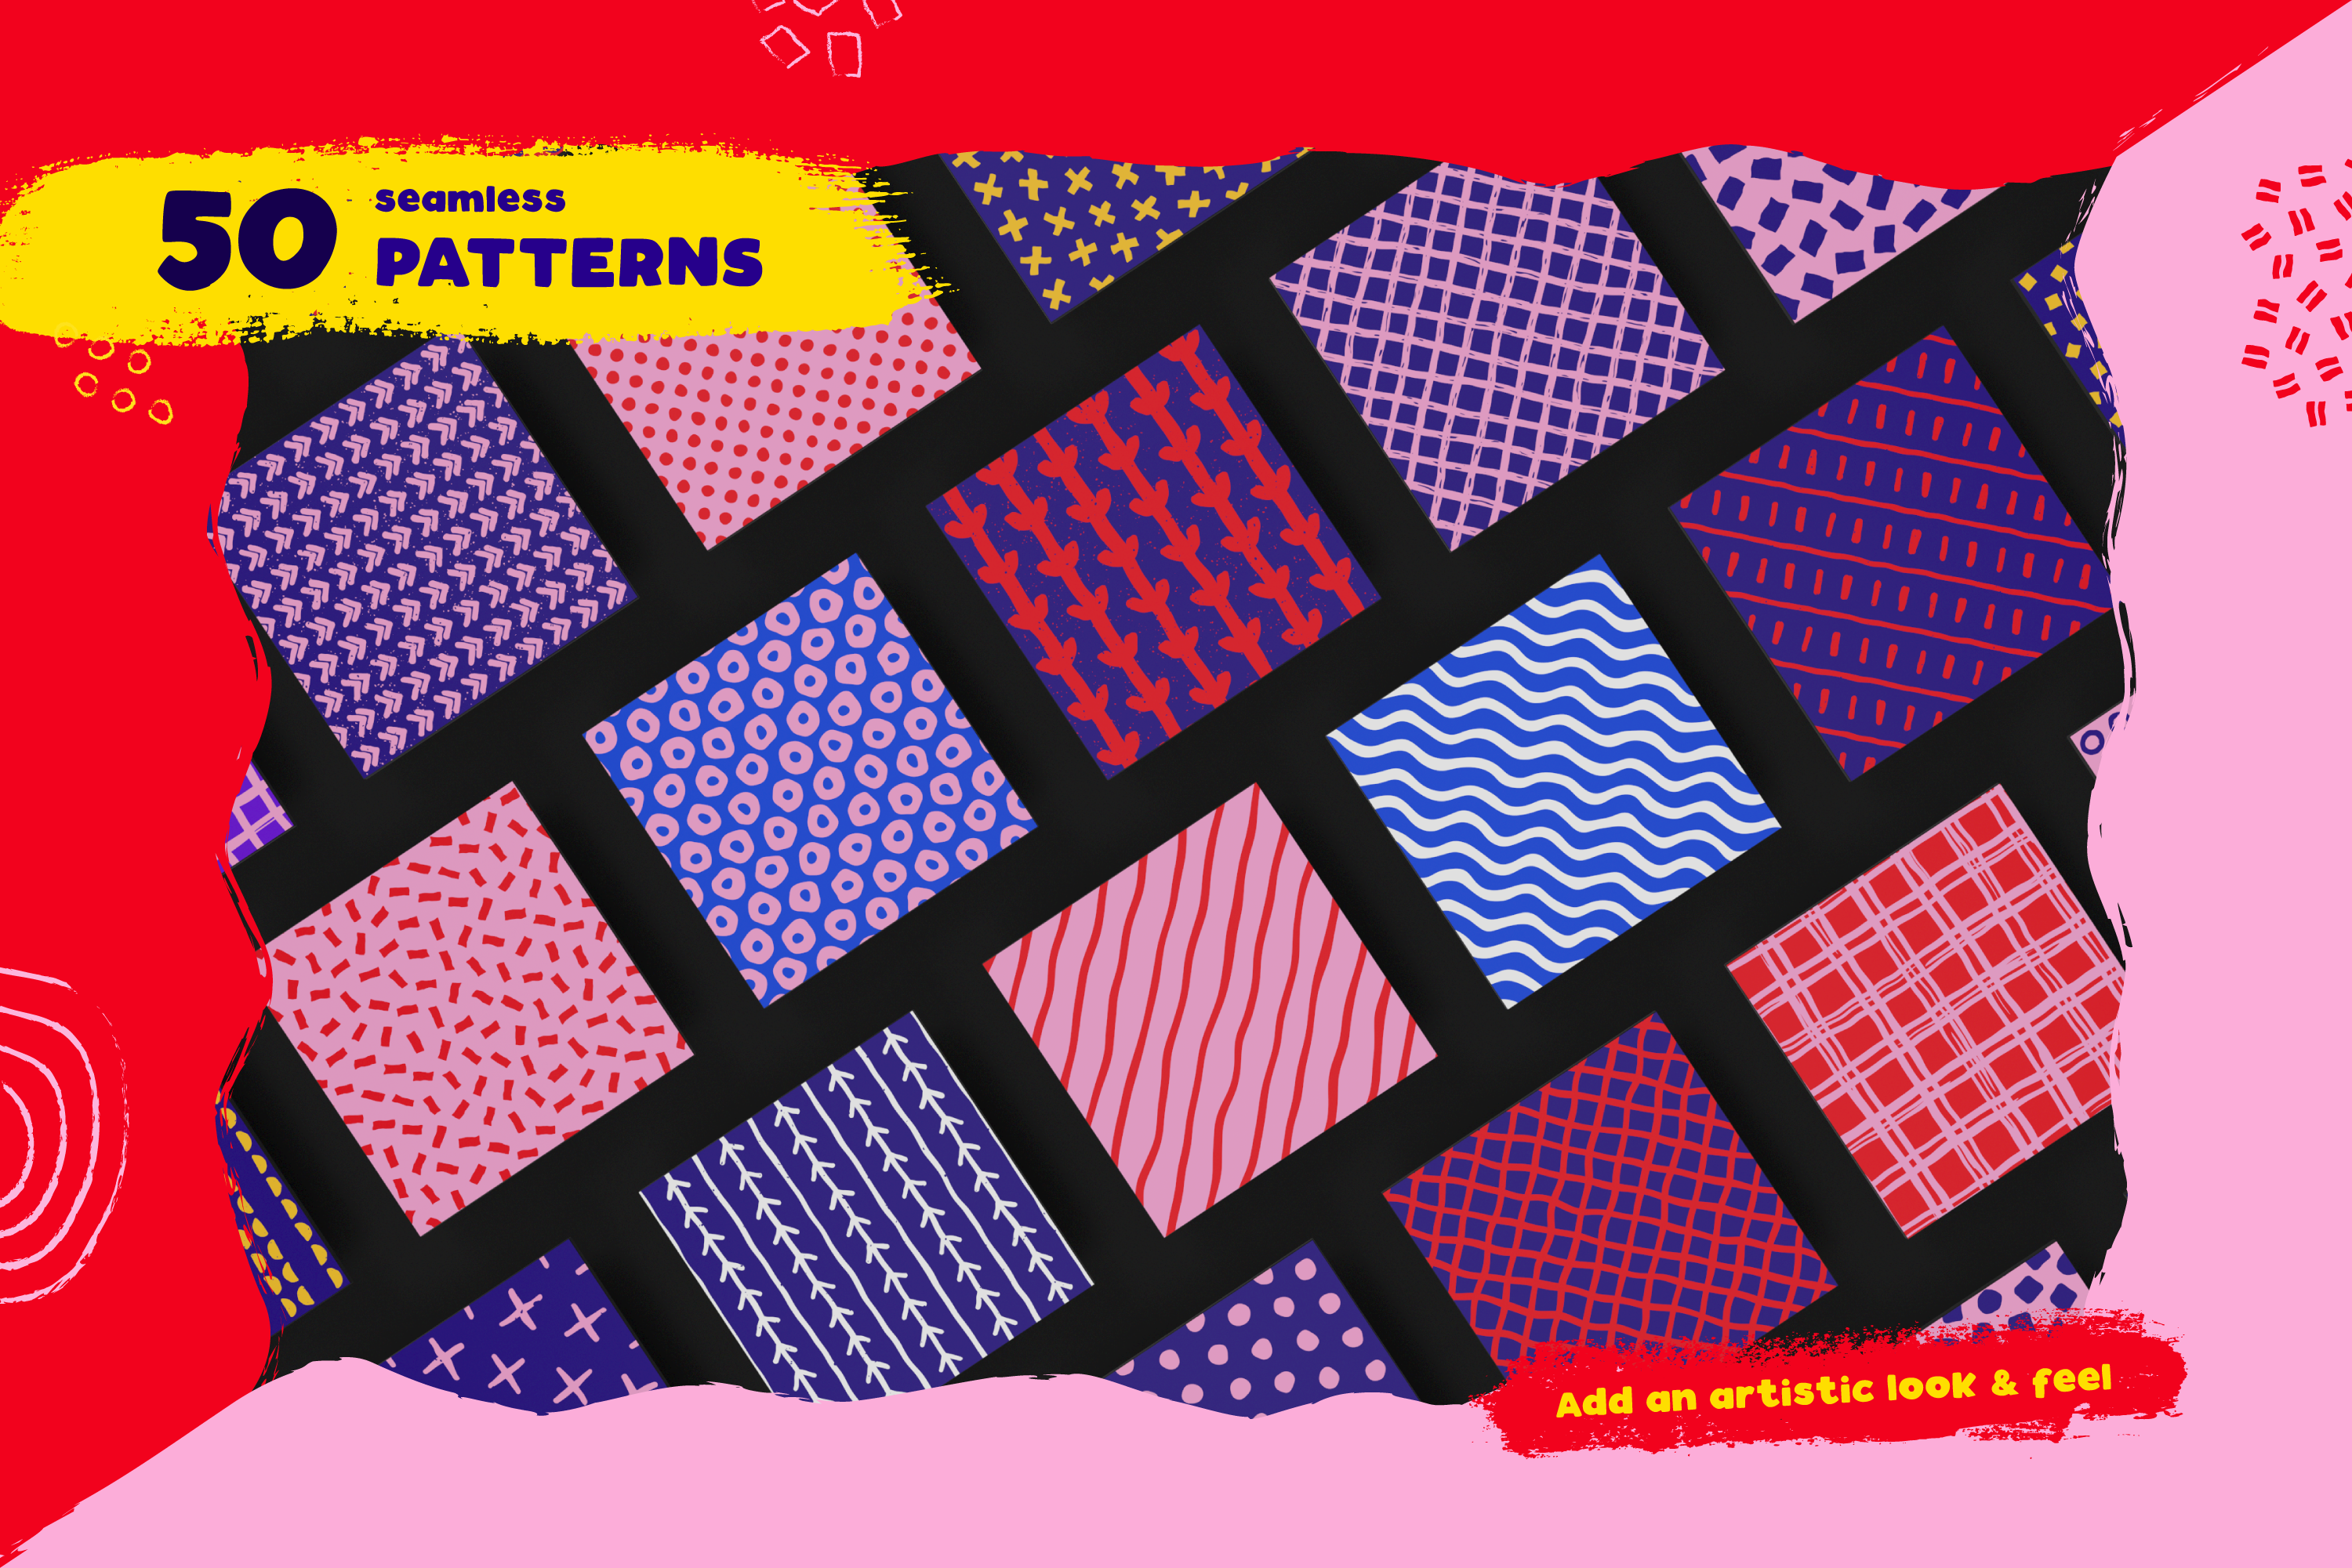 100 Hand-drawn seamless patterns and shapes collection example image 3